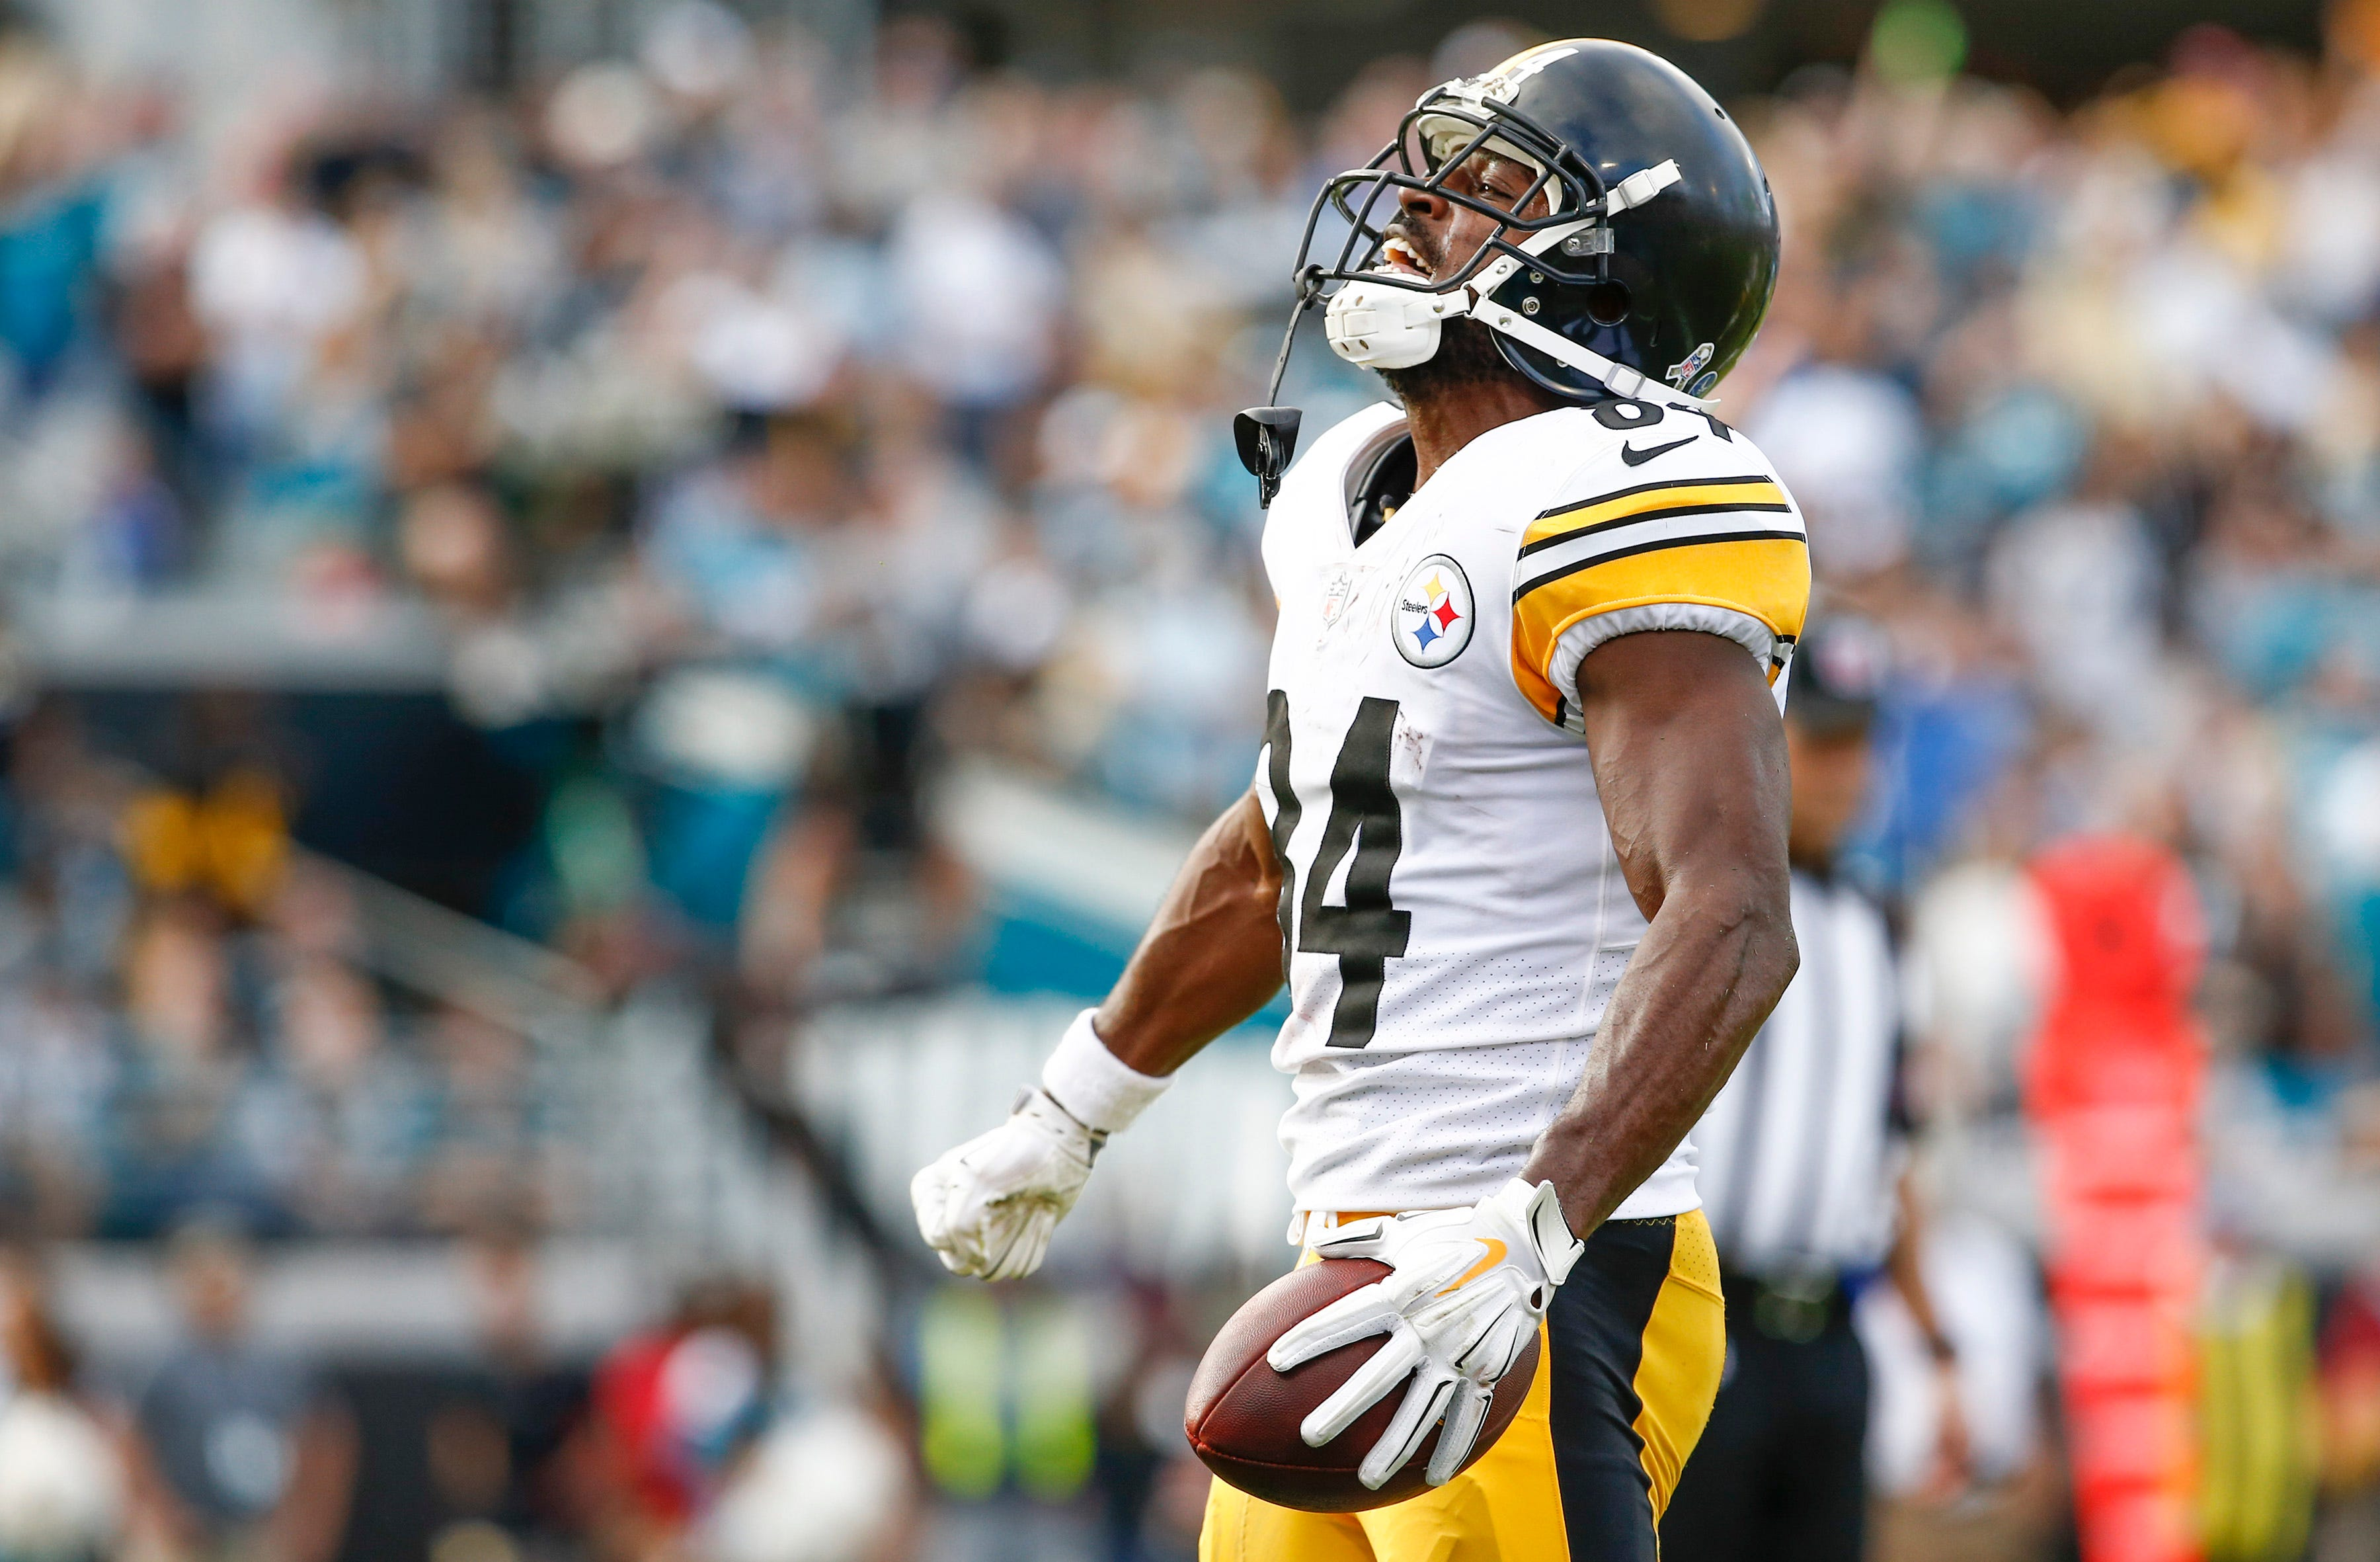 Pittsburgh Steelers riding the touchdowns of WR Antonio Brown to six-game winning streak